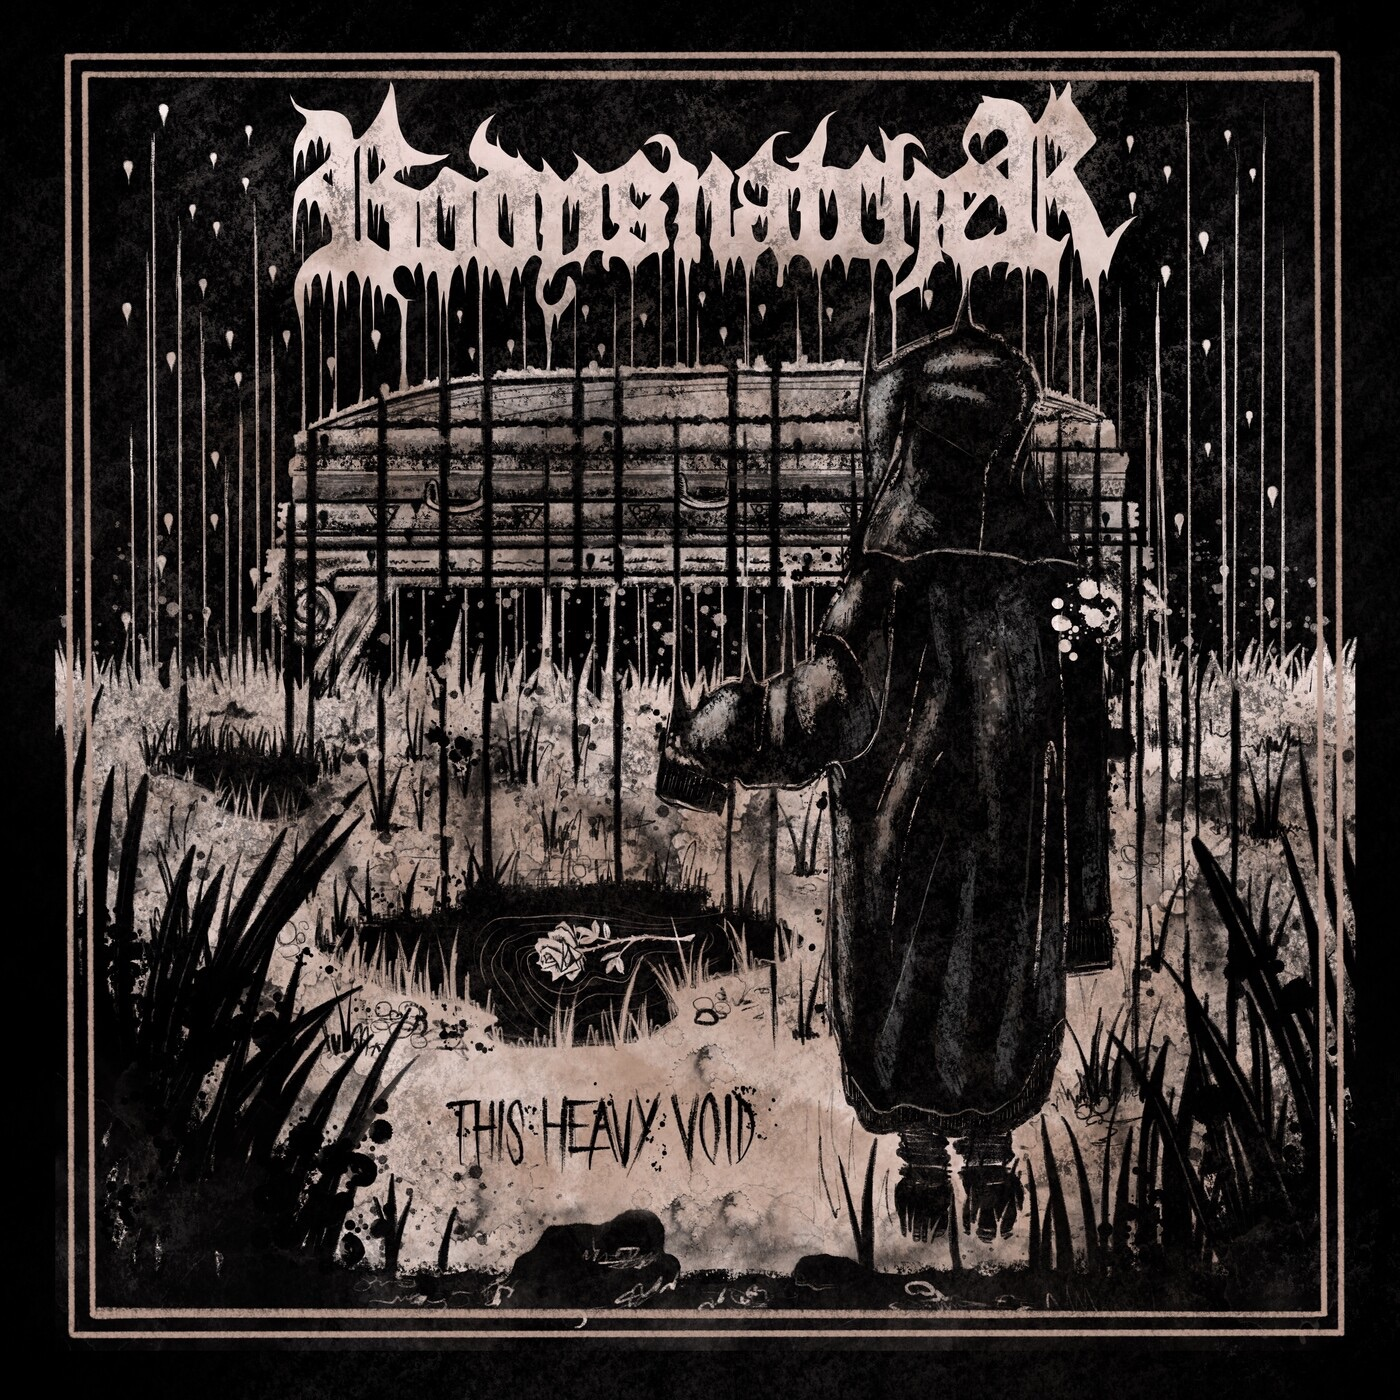 Bodysnatcher - This Heavy Void (2020)